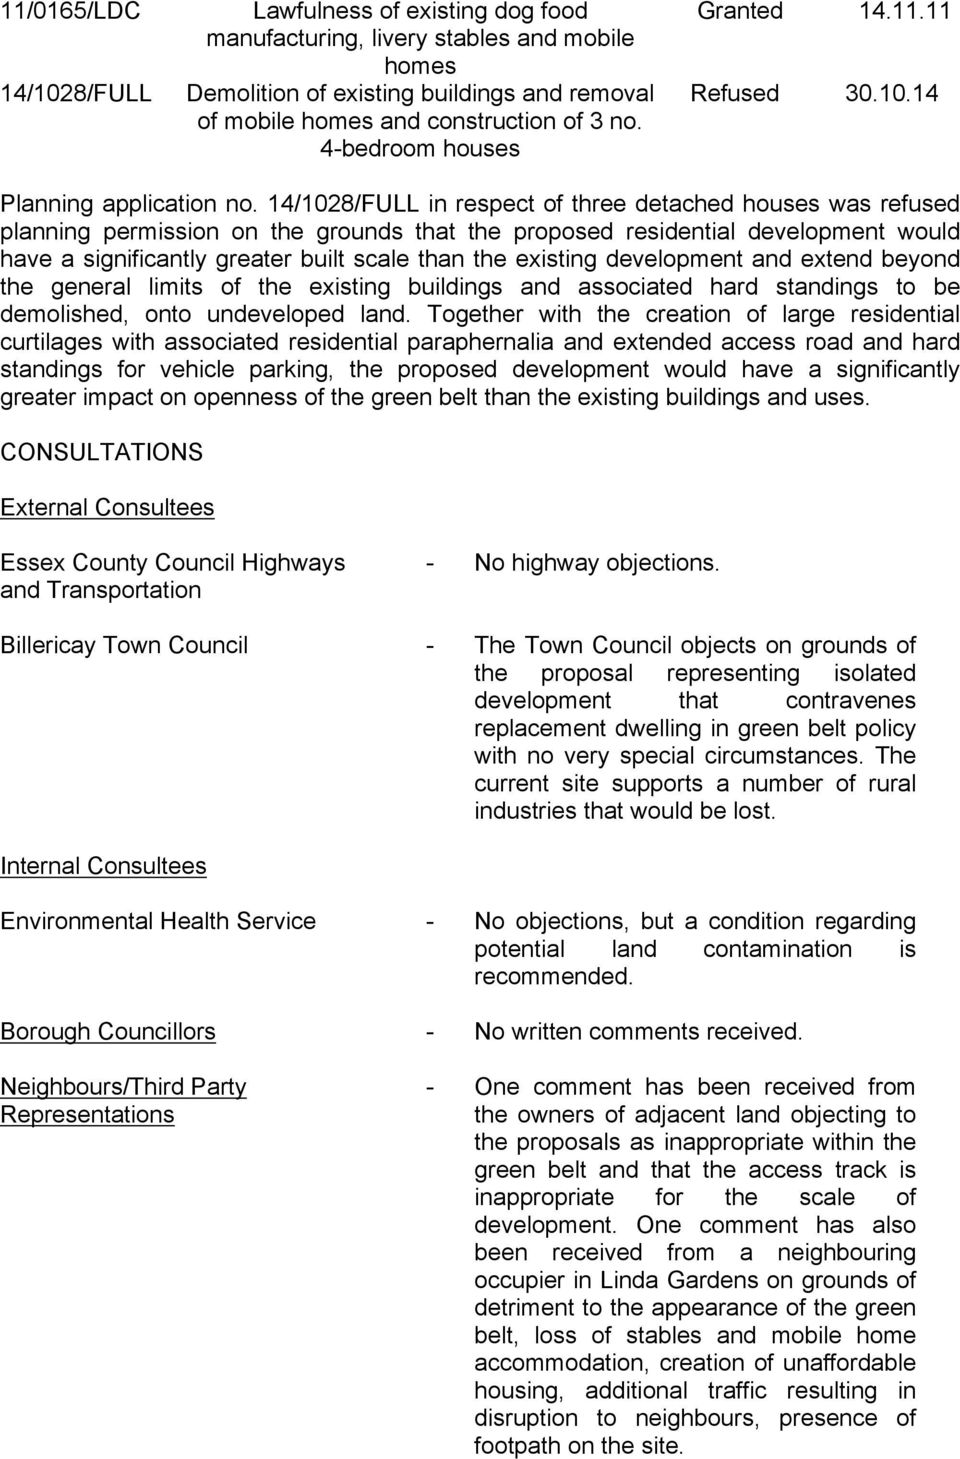 4/08/FULL in respect of three detached houses was refused planning permission on the grounds that the proposed residential development would have a significantly greater built scale than the existing